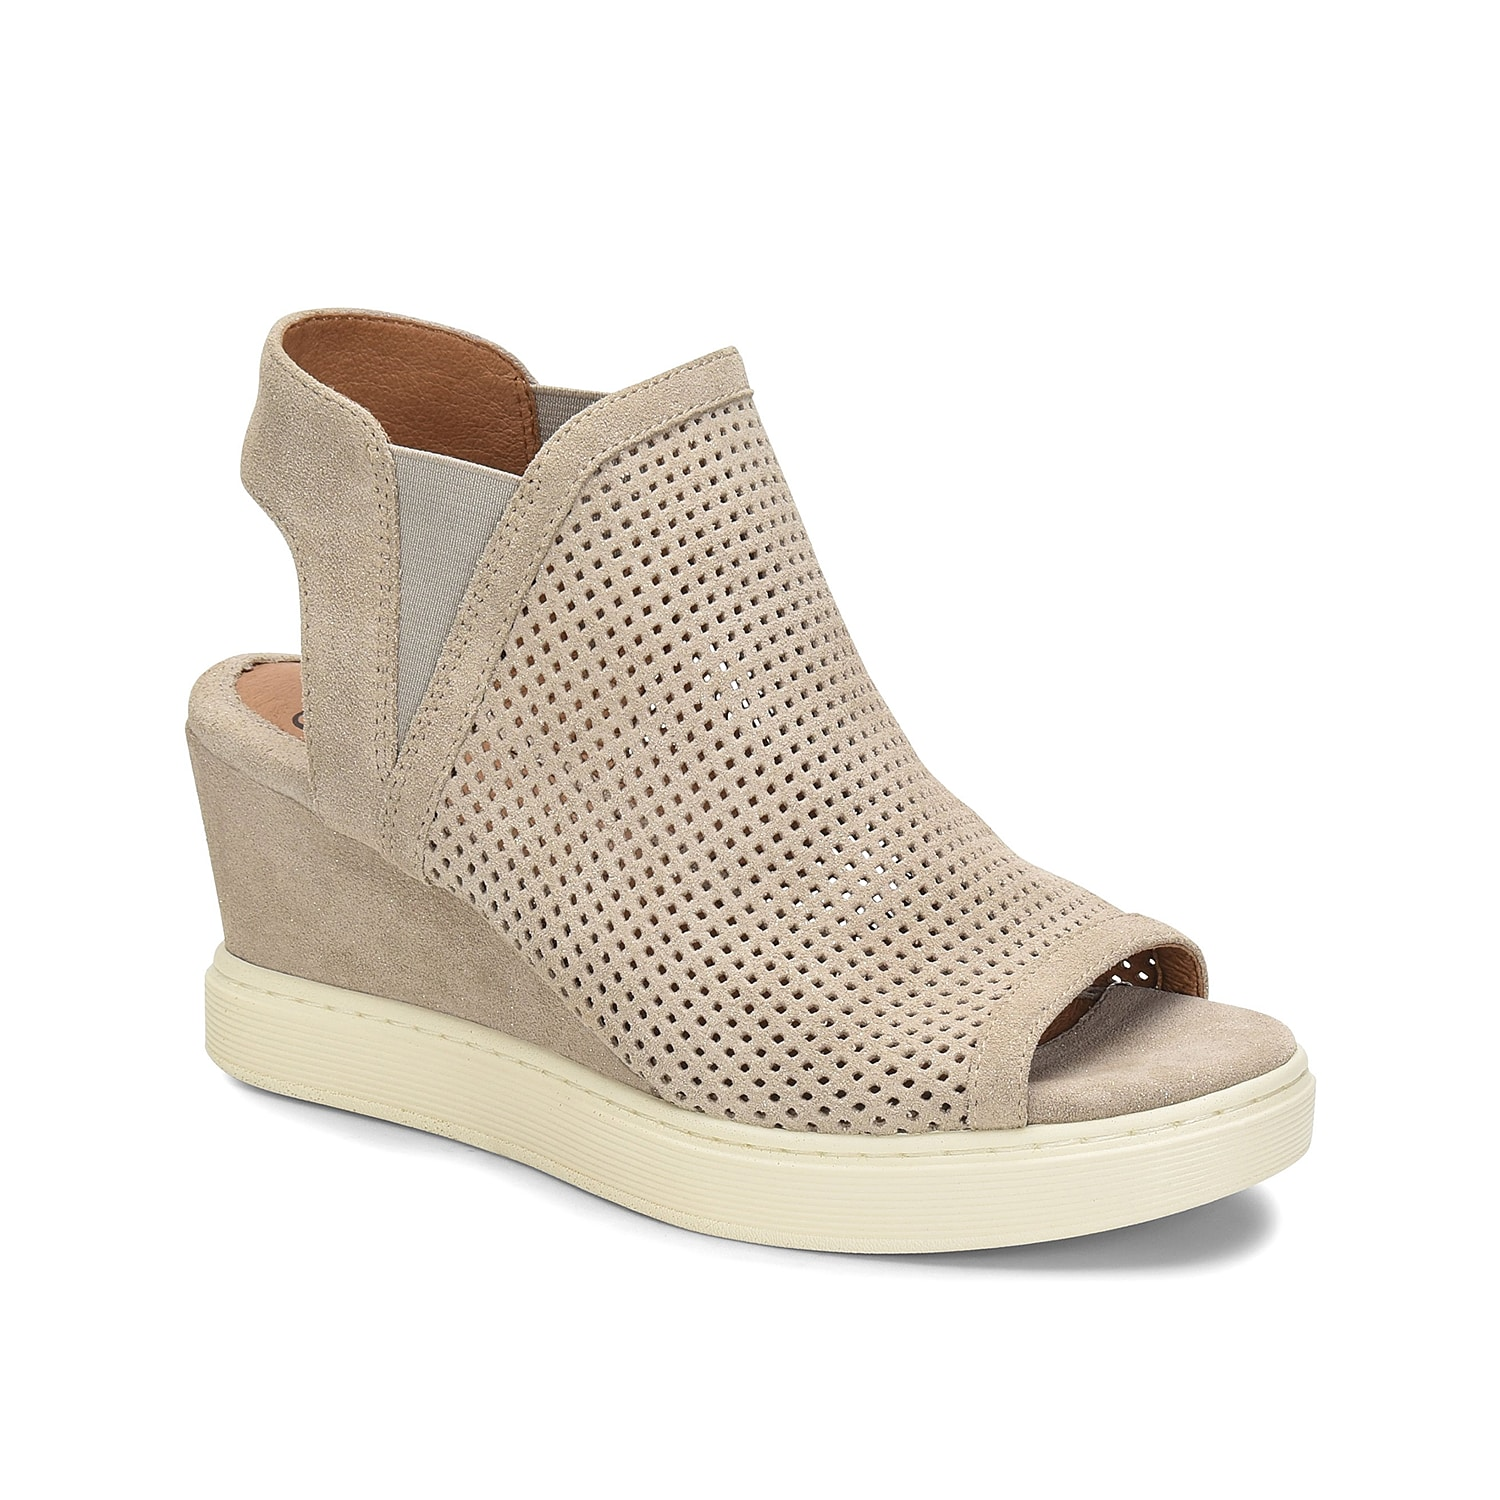 Sporty and comfortable, the Basima wedge sandal from Sofft will keep you looking and feeling your best. This laser-cut pair features a leather-lined footbed with extra cushioning at the ball, heel, and arch of the foot for daylong support.